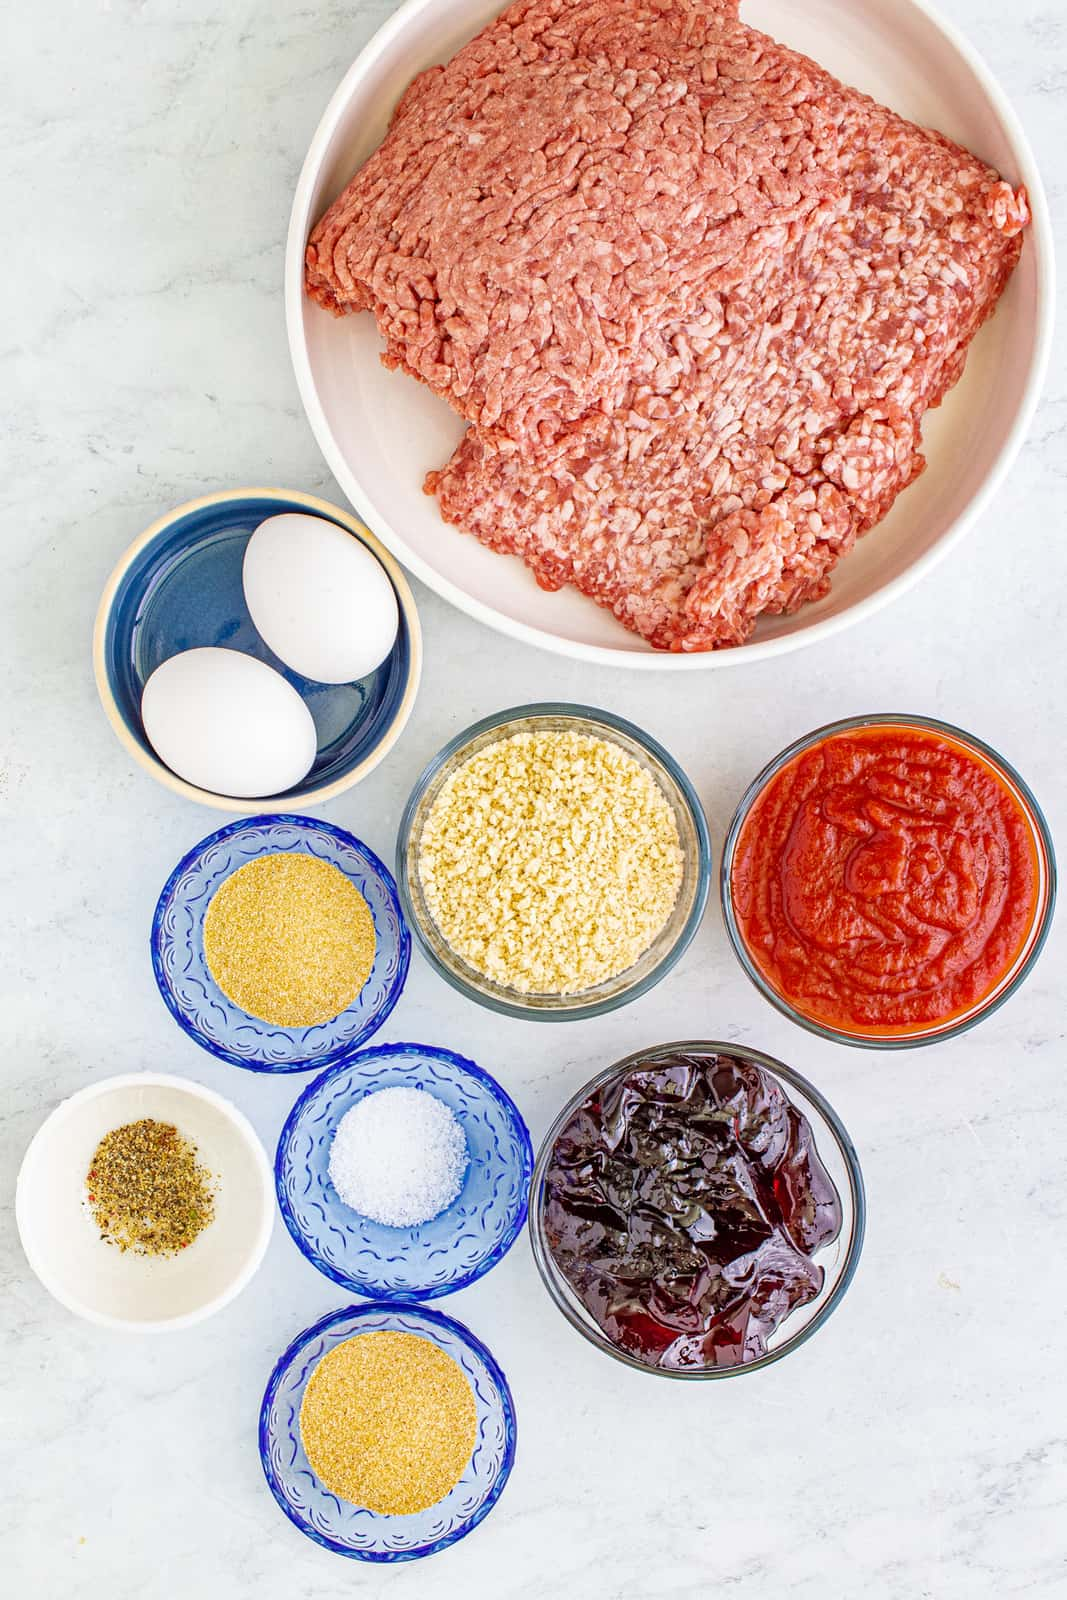 Ingredients needed to make Grape Jelly Meatballs